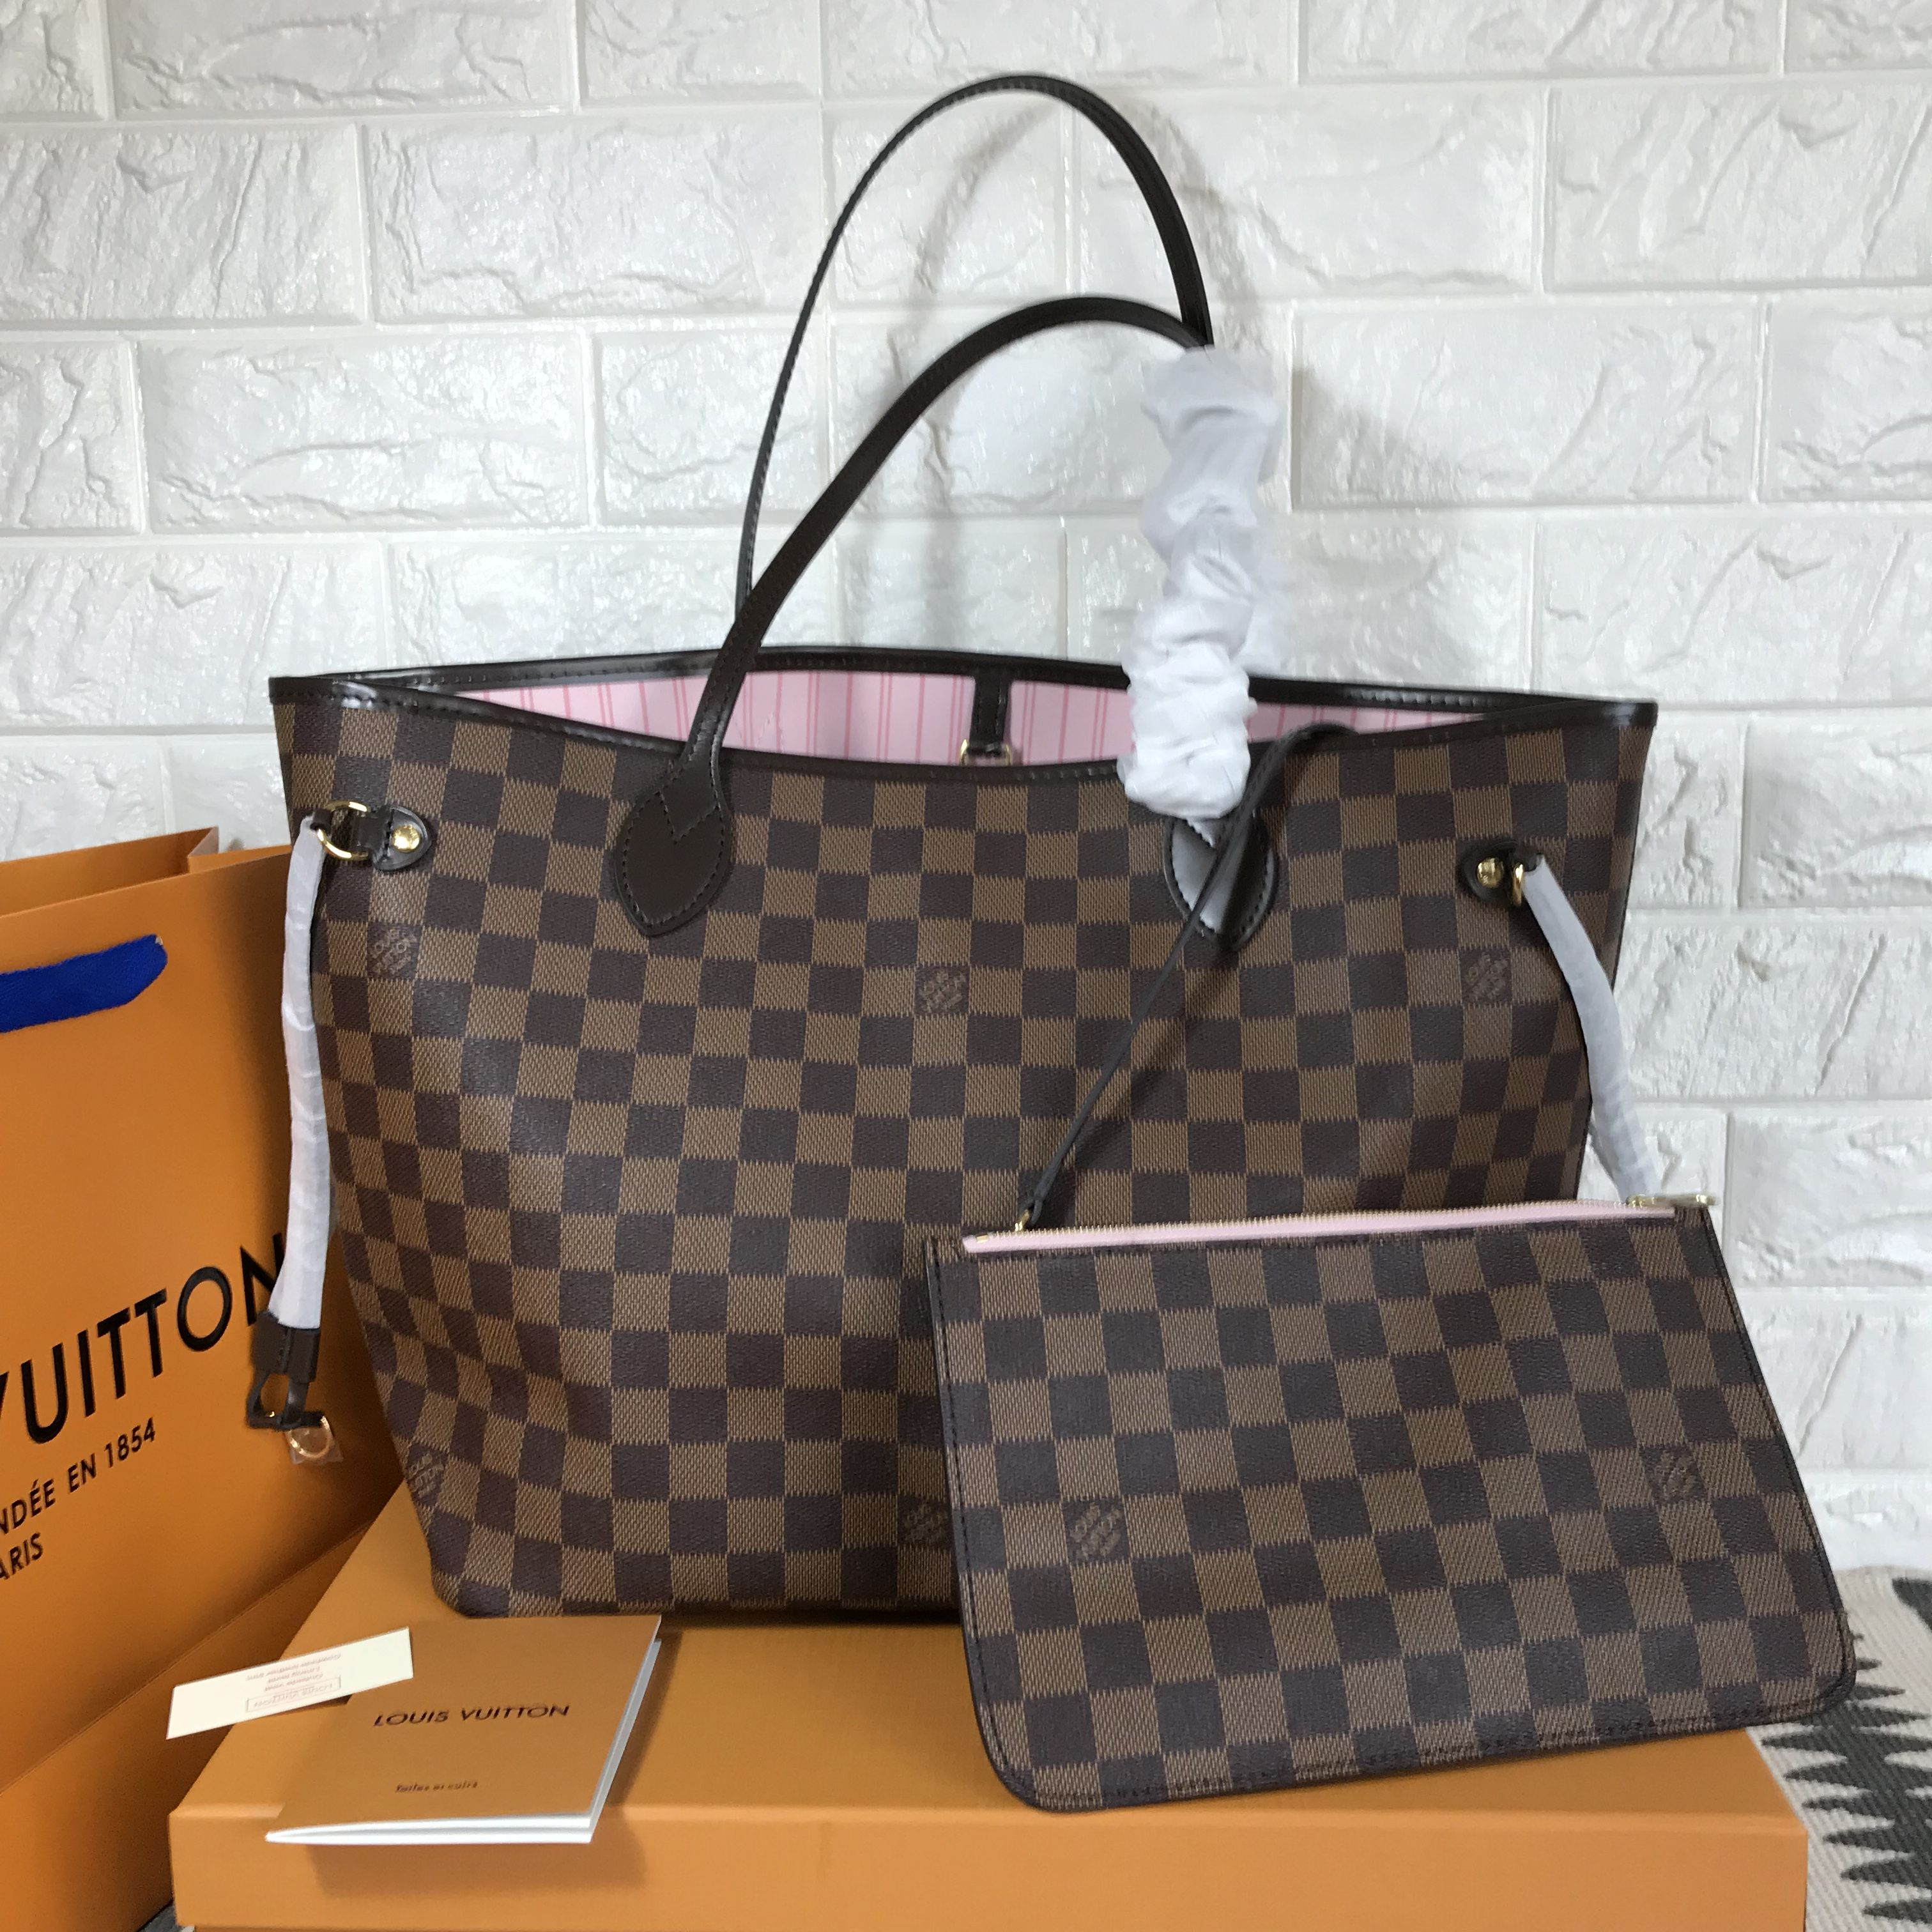 858aa15bd2 Louis Vuitton lv neverfull shopping tote bag Damier ebene with pink  interior original leather version